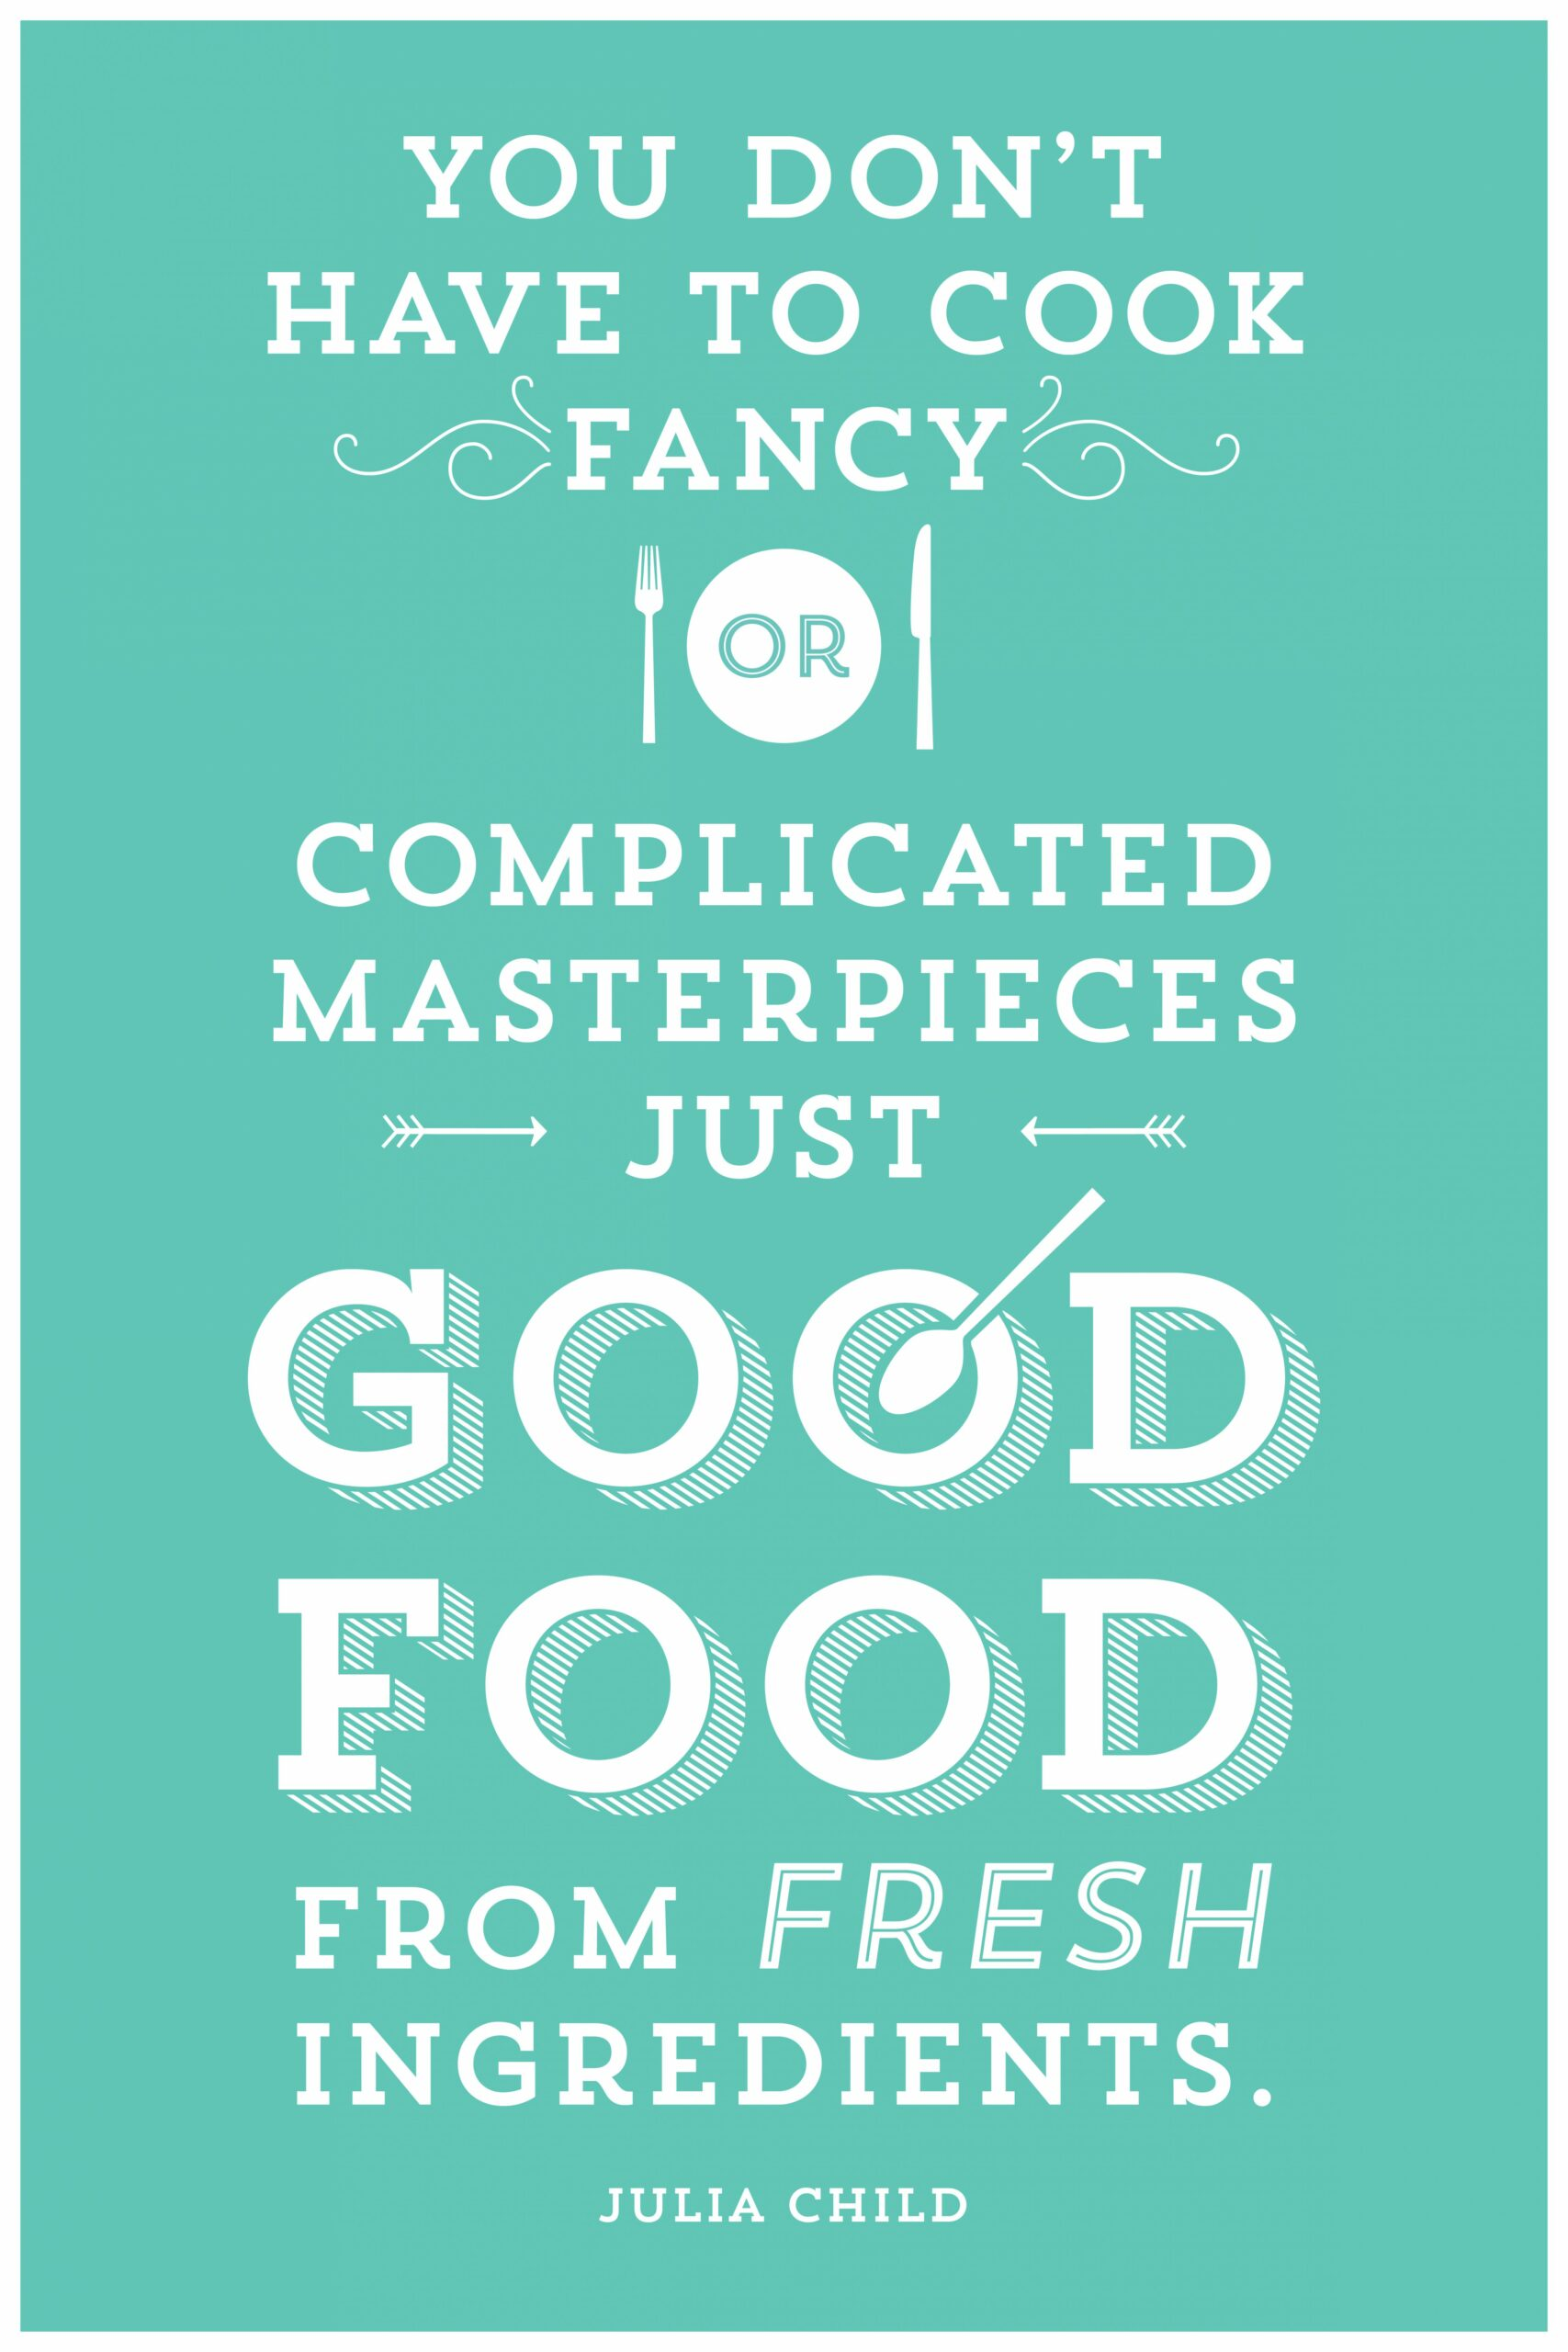 Quotes about Food recipes (8 quotes) - Food Recipes Quotes